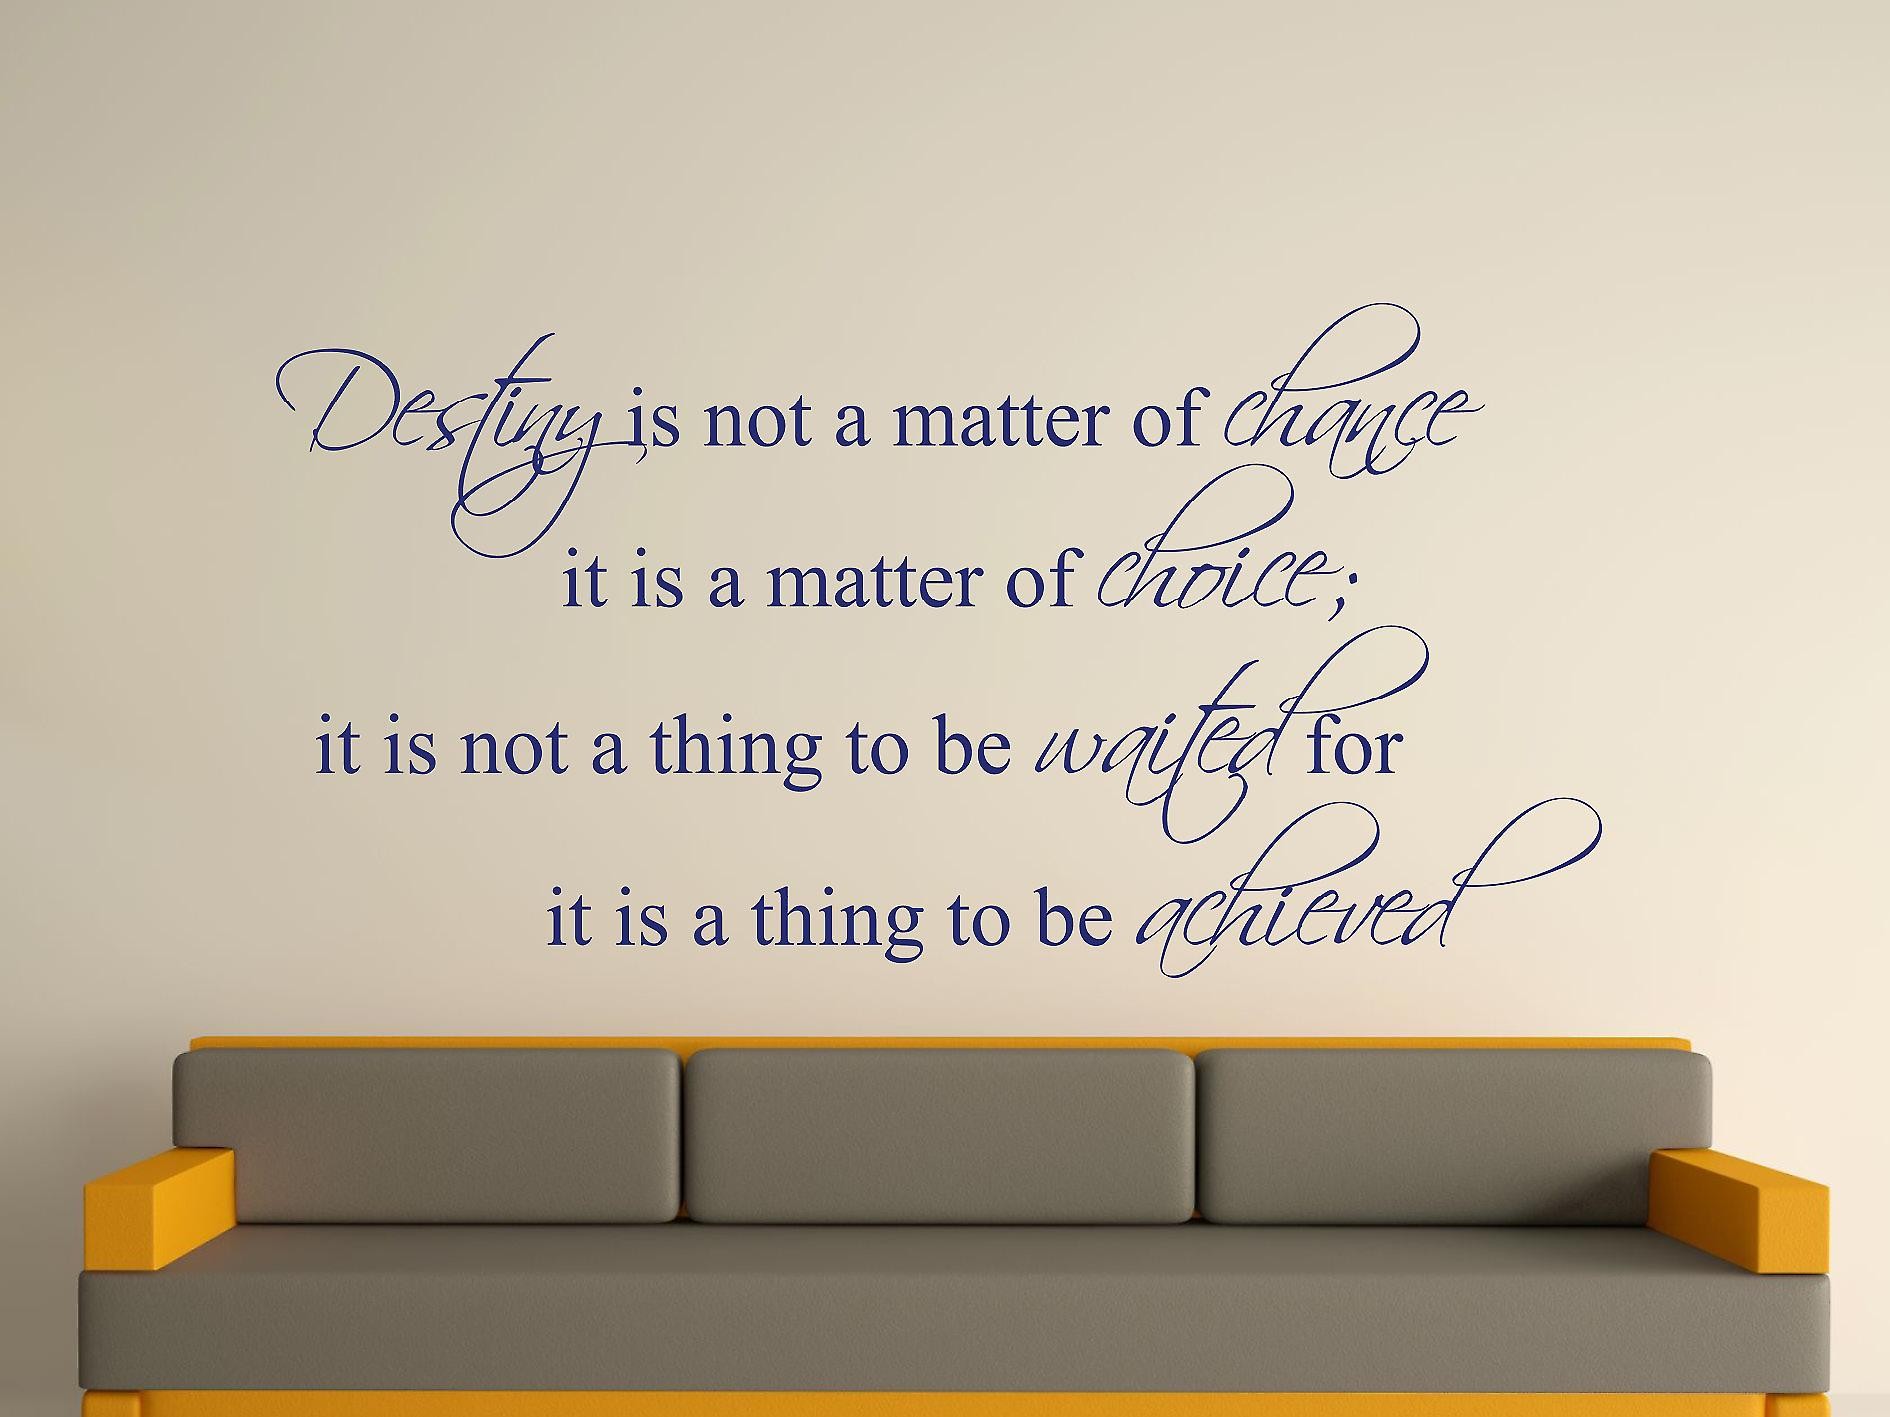 Destiny Is Not A Matter of Chance Wall Art Sticker - Ultra Blue